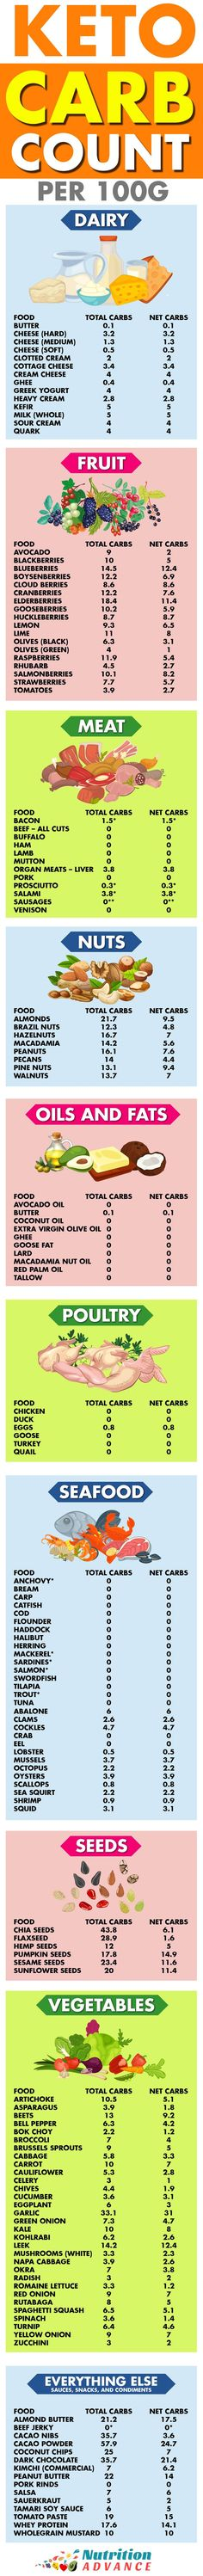 Just started a ketogenic diet? Well, maybe you are wondering about the right foods to eat! This infographic provides a list of all the foods that are suitable for a keto diet, along with how much total carbs and net carbs (non fibrous carbs) they contain per 100 grams. All foods are healthy, low carb, and rather tasty too! Read the article at: https://www.nutritionadvance.com/keto-shopping-list/ #ketoshoppinglist #ketogrocerylist #ketogenicdiet #lowcarbhighfat #ketoeats